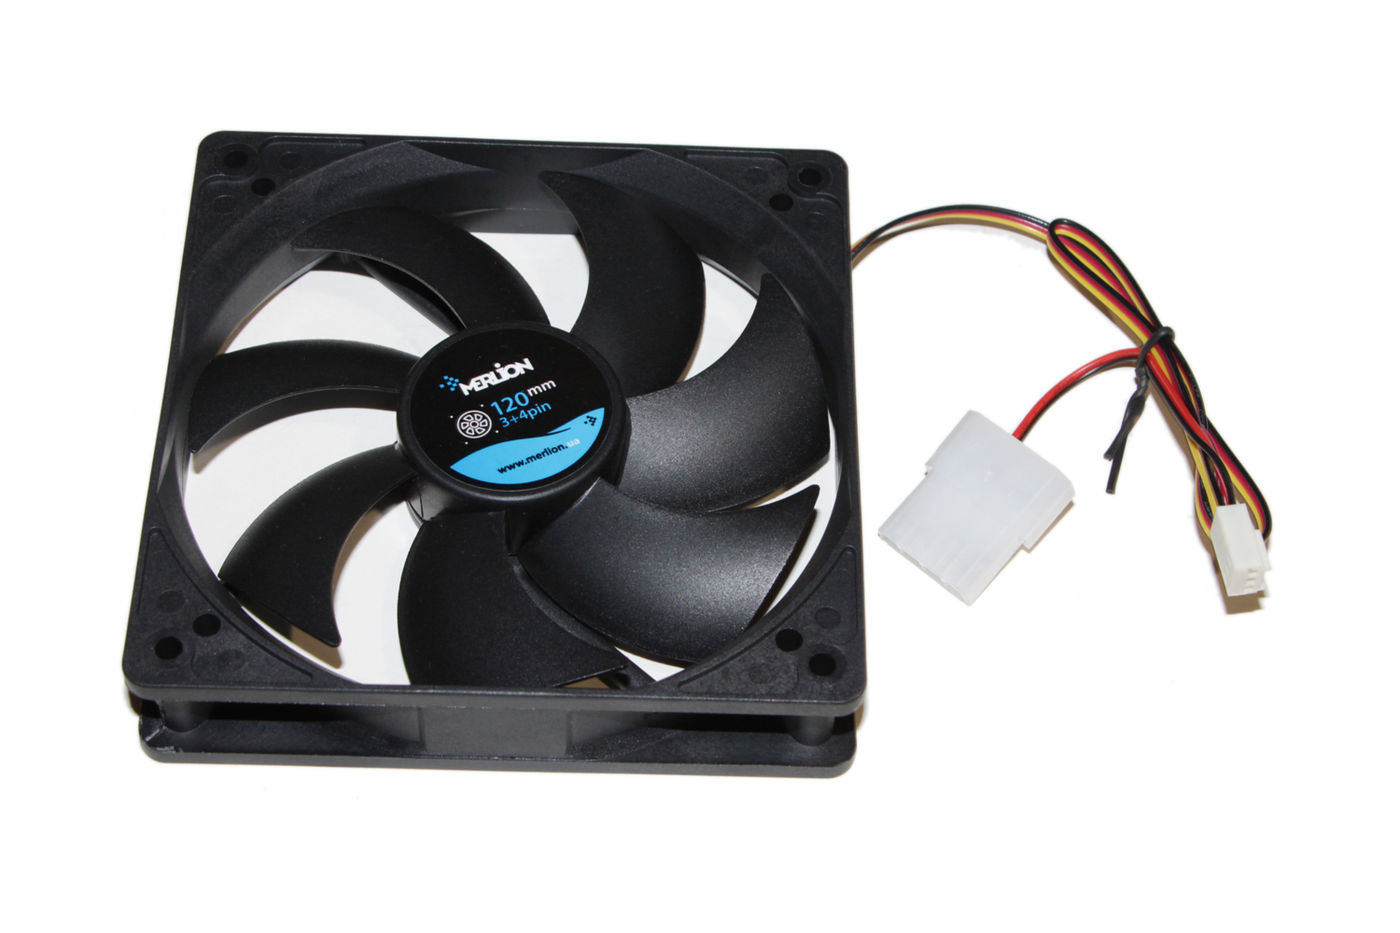 Вентилятор 120 mm Merlion 12025 DC sleeve fan 4pin - 120*120*25мм, 1100об/мин